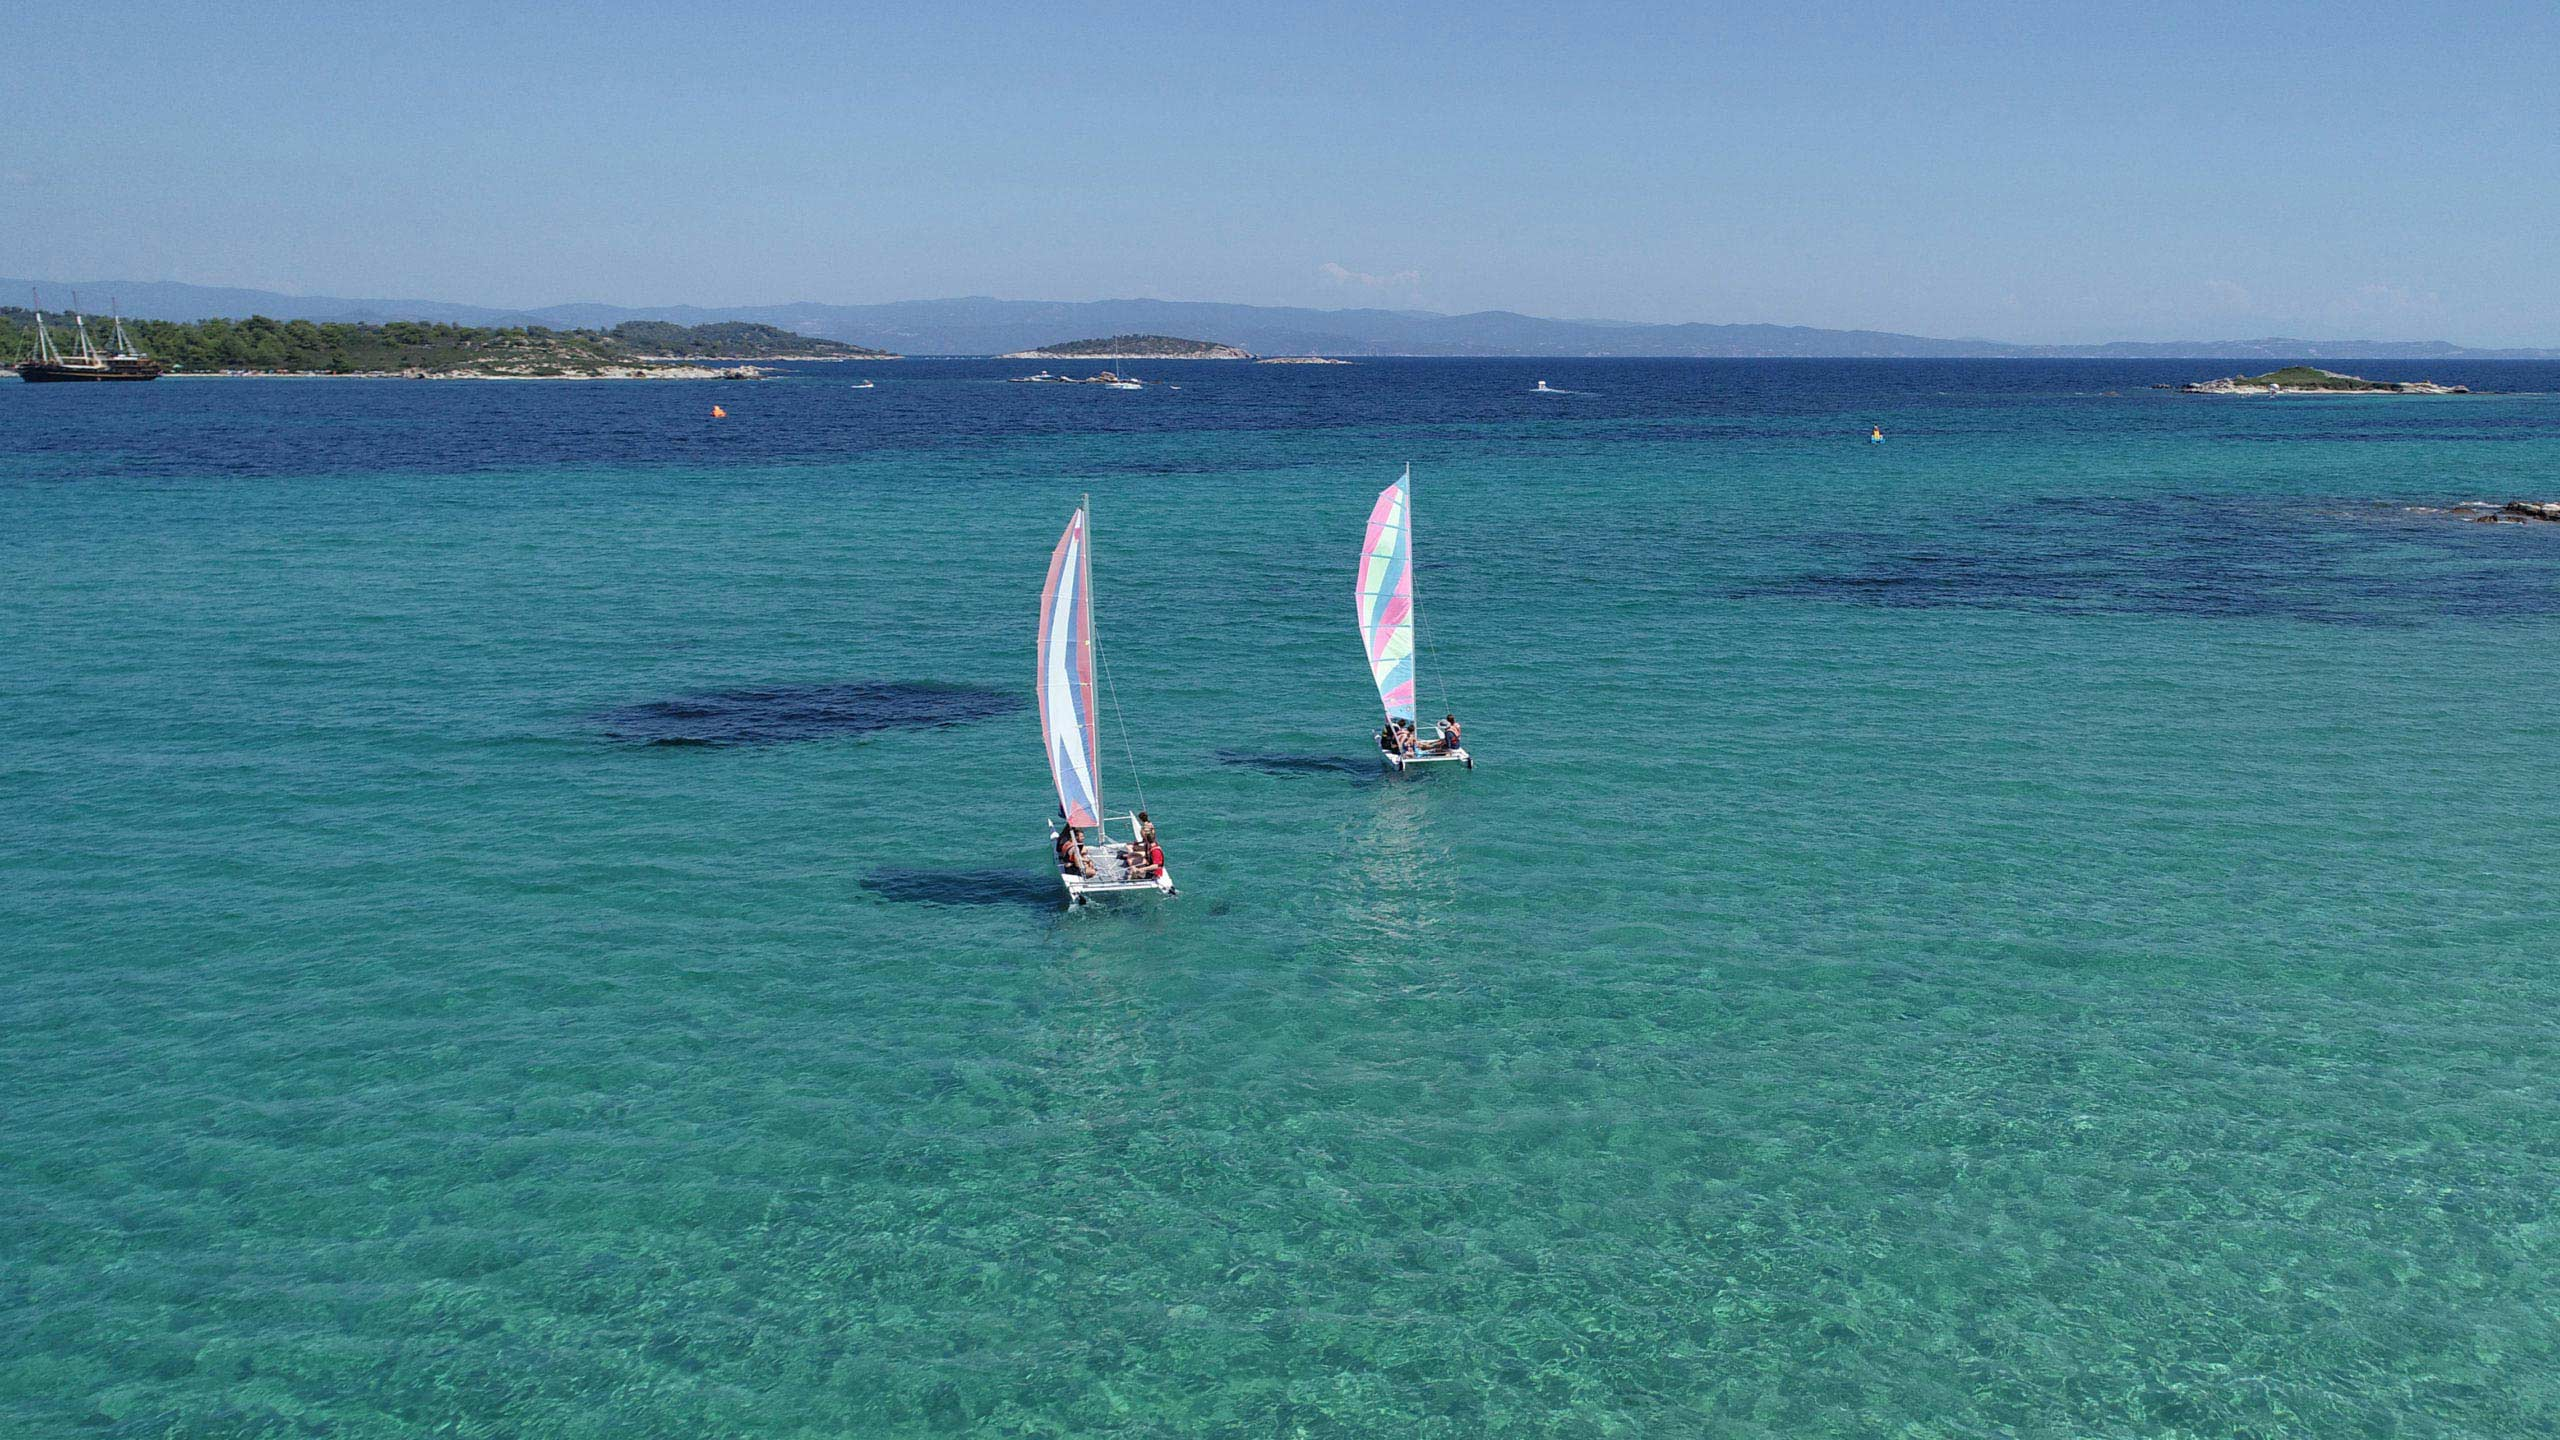 Two catamarans sailing in blue waters